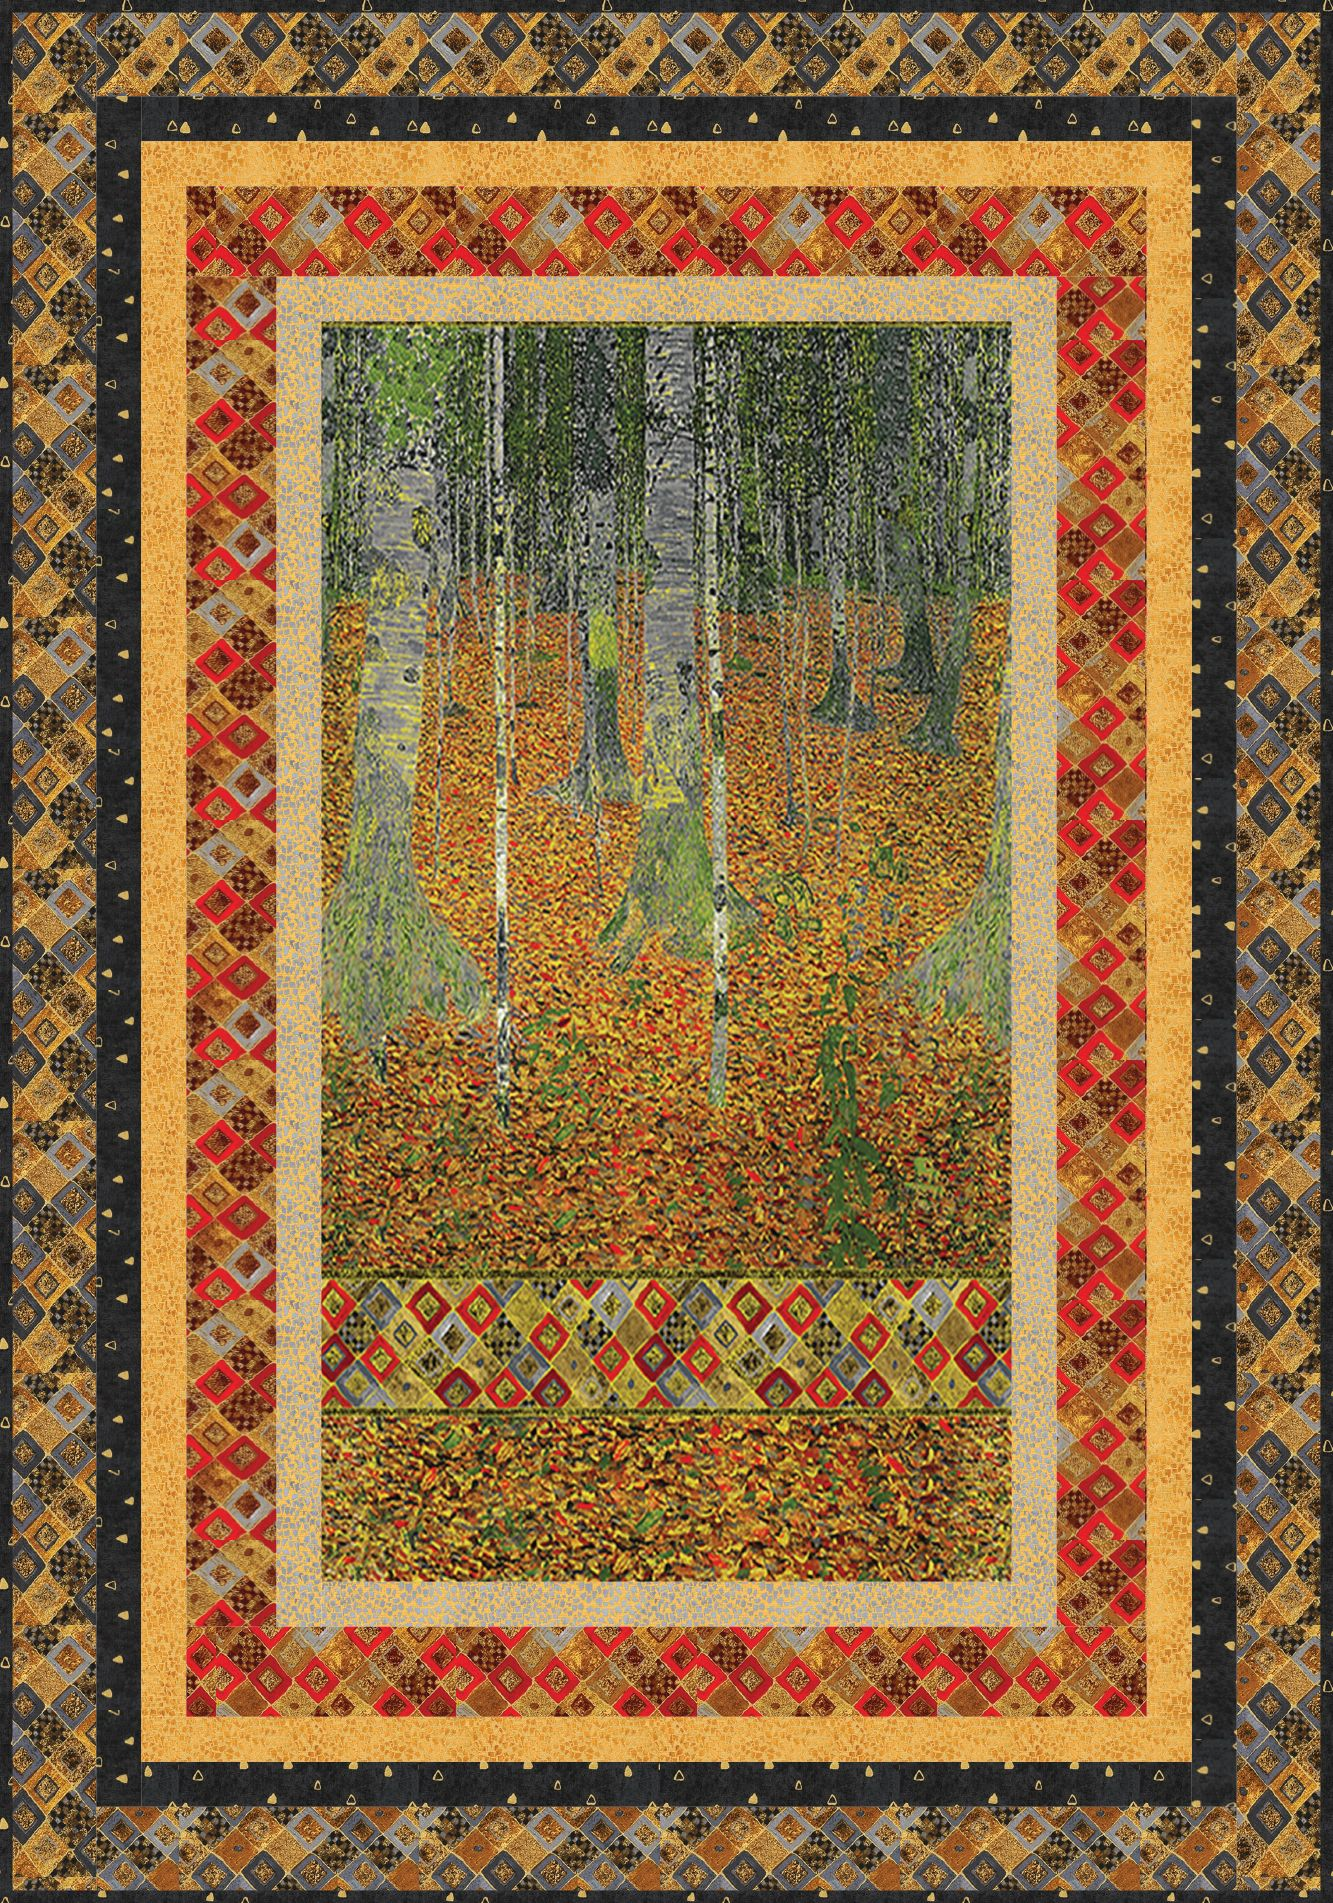 Free Pattern Picture Perfect Designed By Ariga Mahmoudlou For Robert Kaufman Features Gustav Klimt By Studi Robert Kaufman Fabrics Forest Quilt Panel Quilts